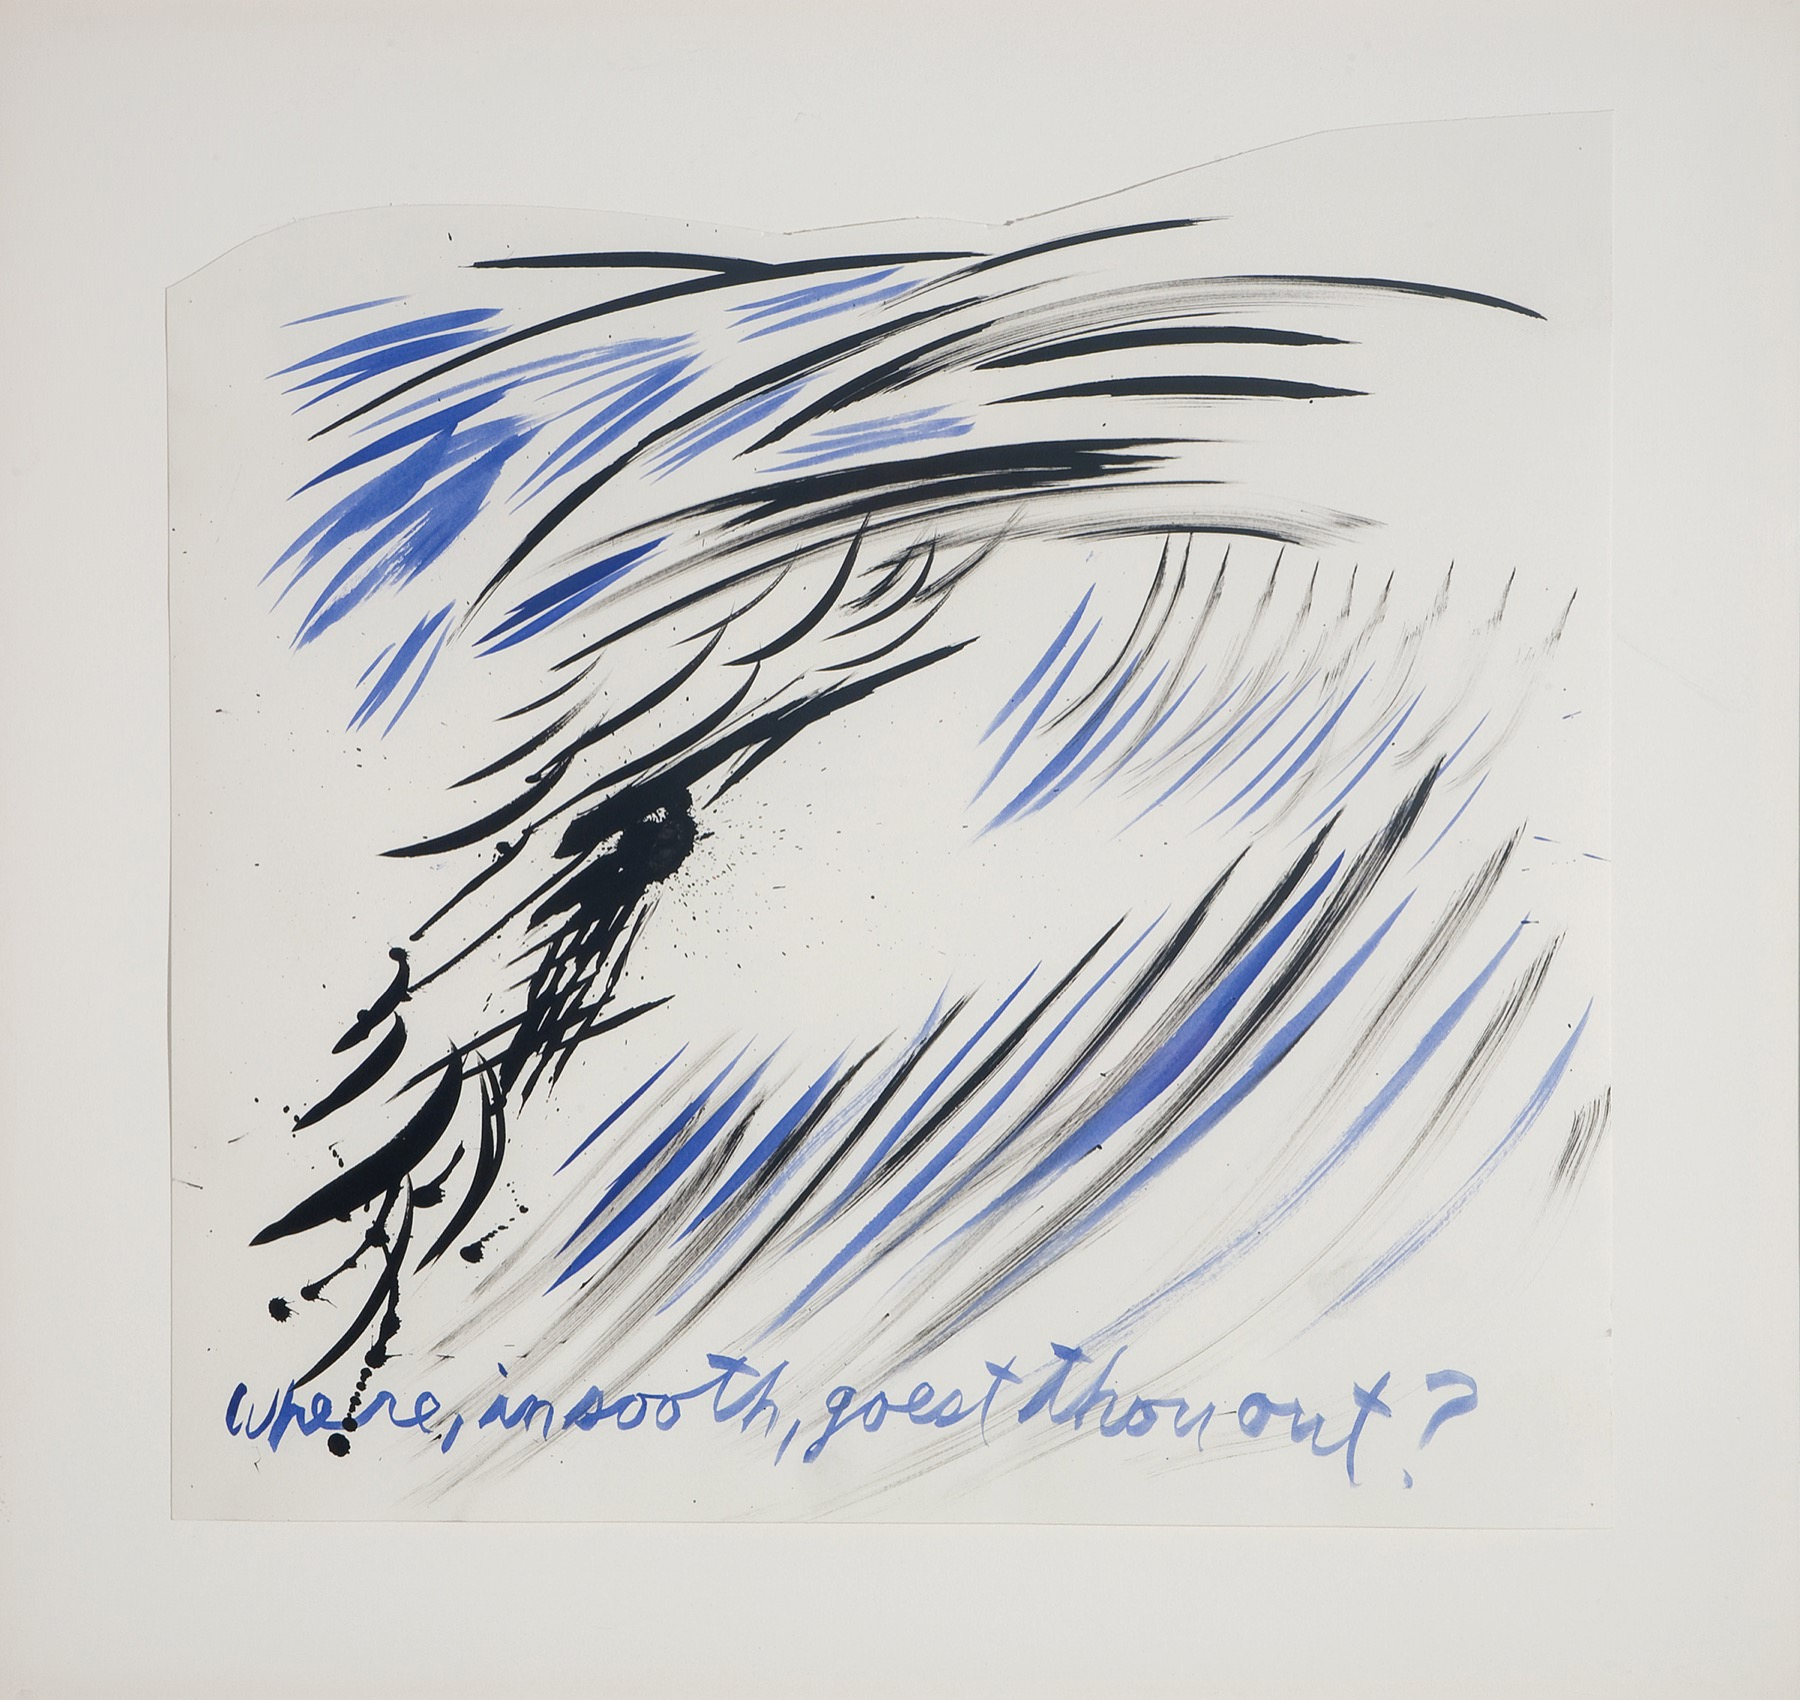 Image of Raymond Pettibon, Untitled (Where, in sooth, goest thou out?), 2003